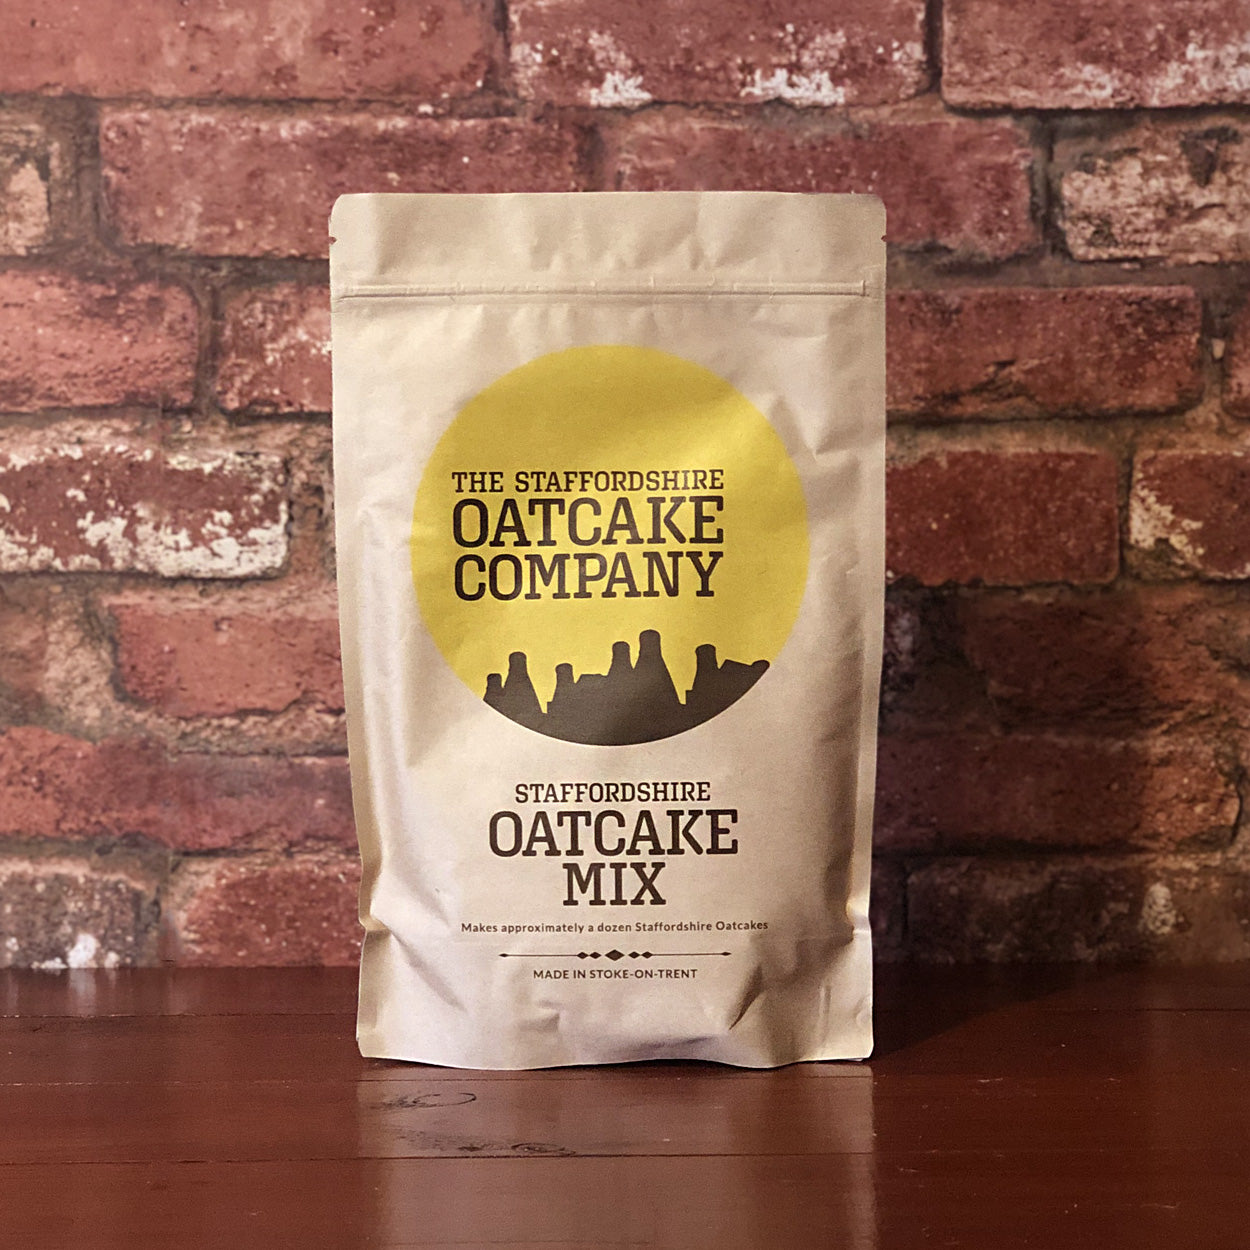 Staffordshire-Oatcake-Mix